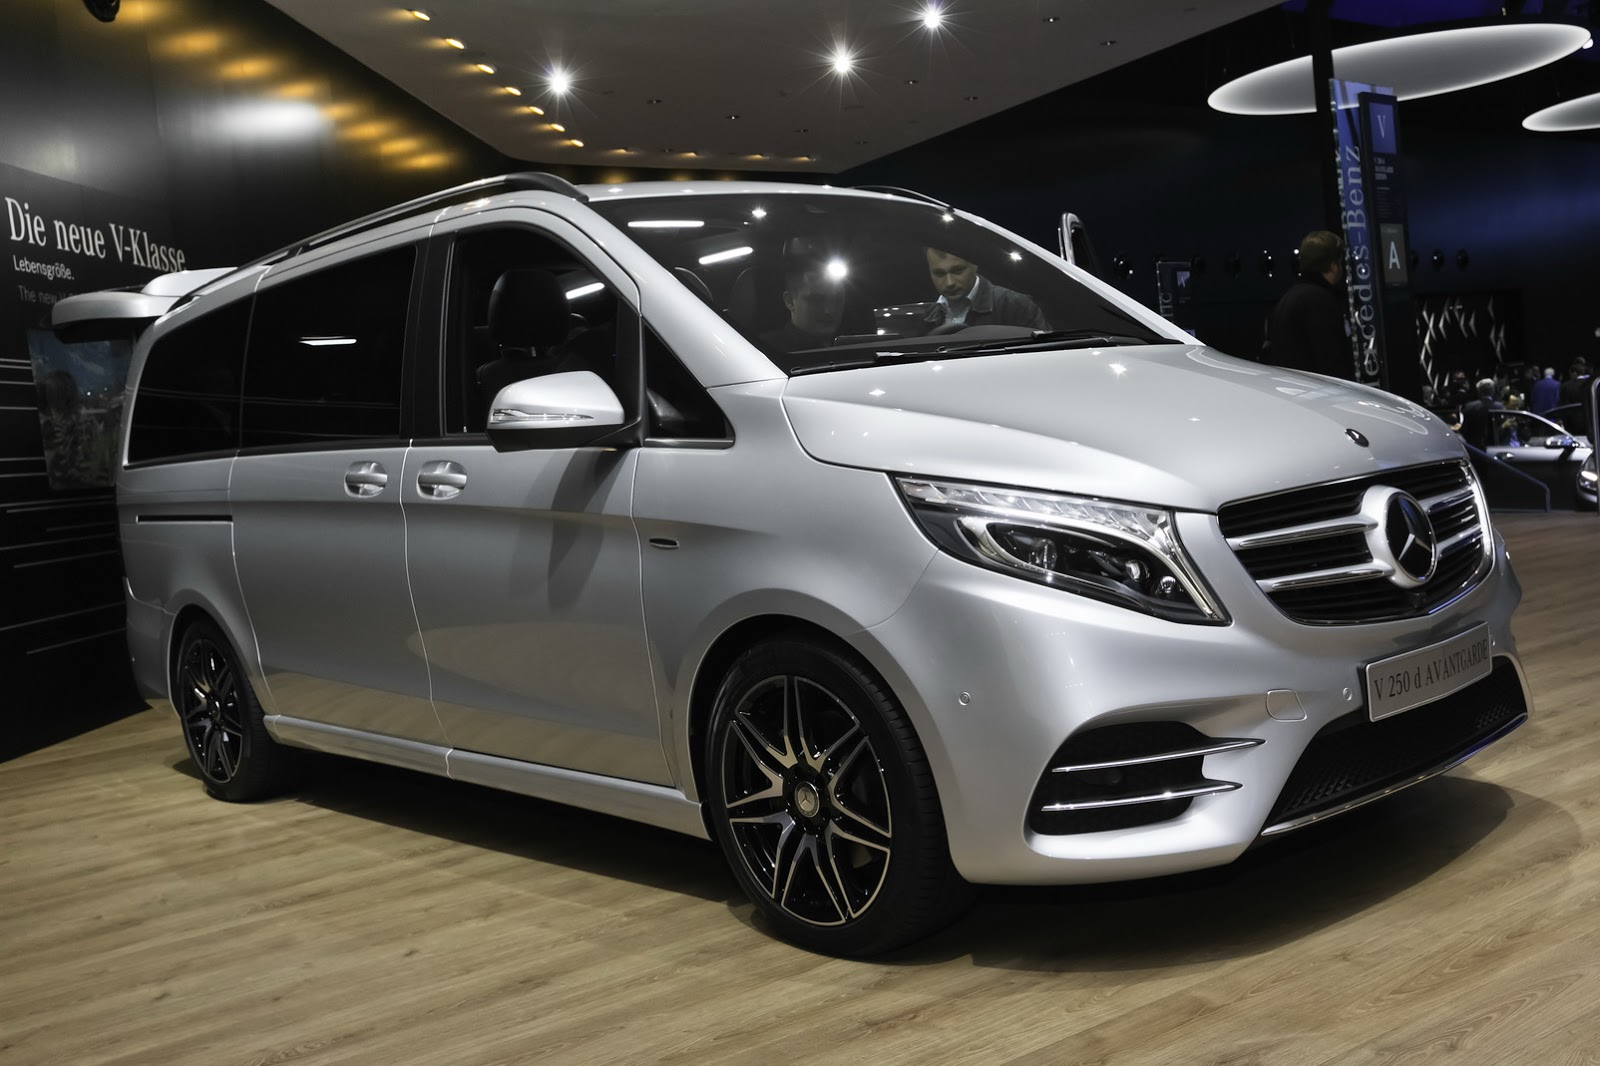 2016 amg mercedes benz v class. Black Bedroom Furniture Sets. Home Design Ideas